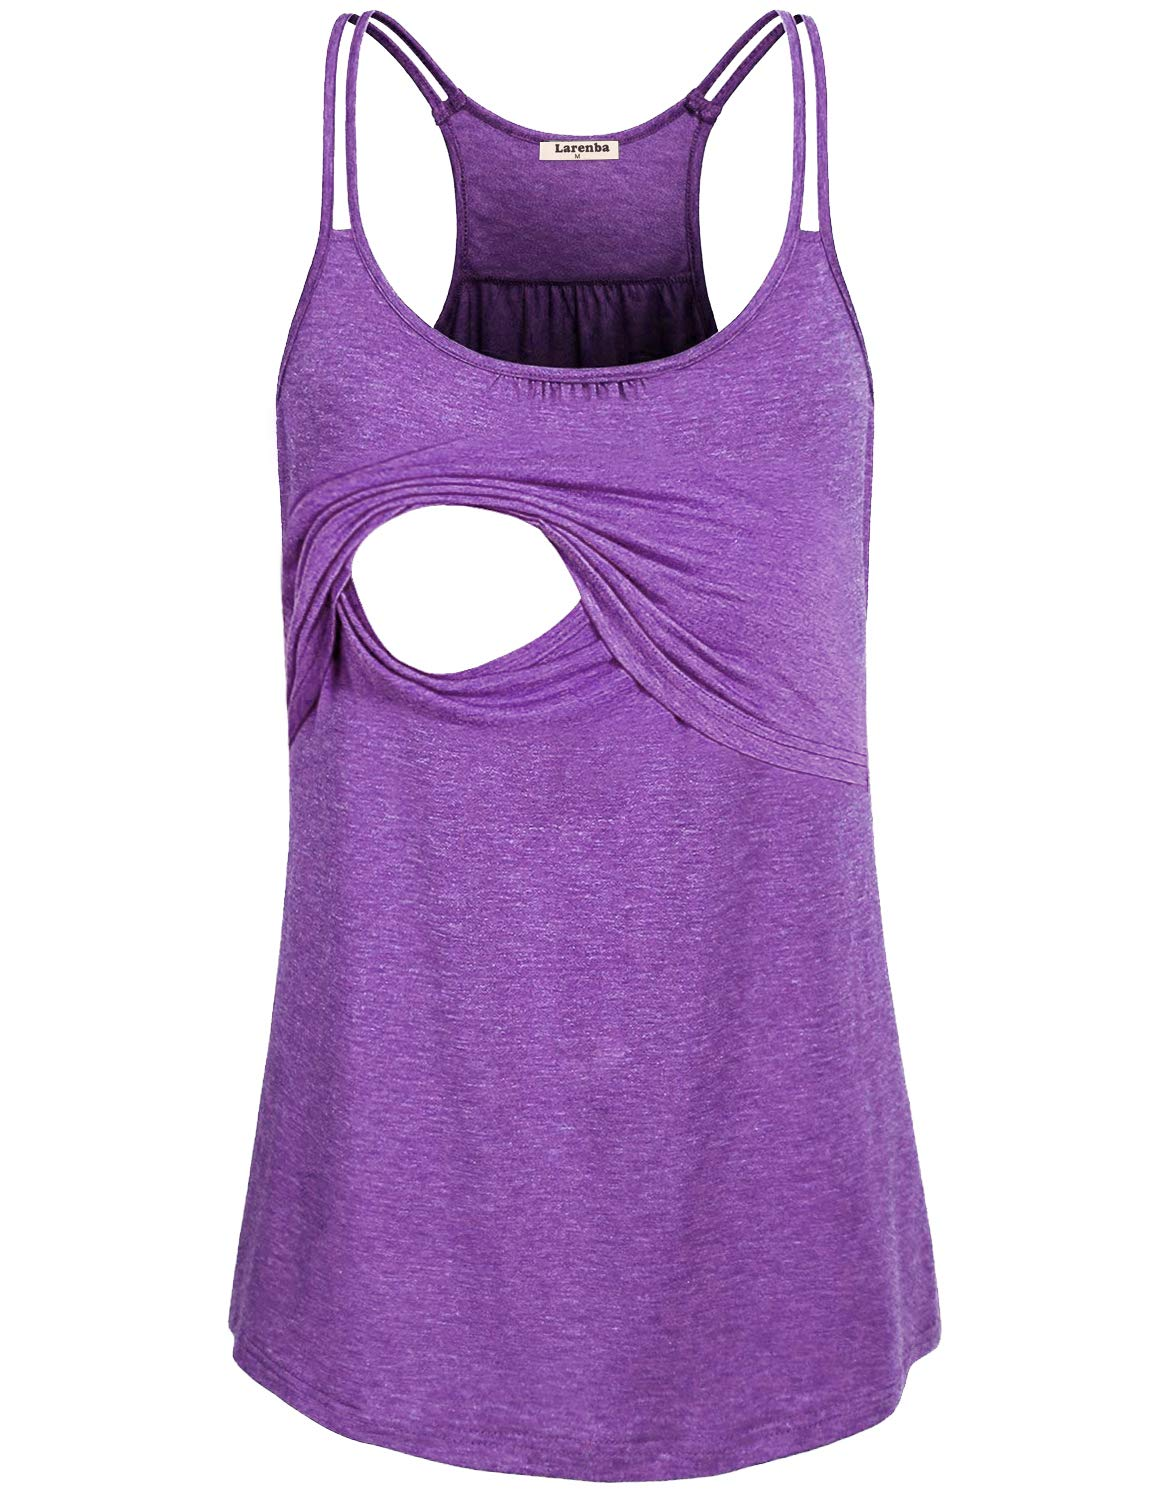 Larenba Breastfeeding Shirt, Women Summer Loose Soft Nursing Tank Top Plus Size Sleeveless Maternity Tunic Top for Leggings Breathable Double Layered Tops Postpartum Shirts(Violet,Medium)